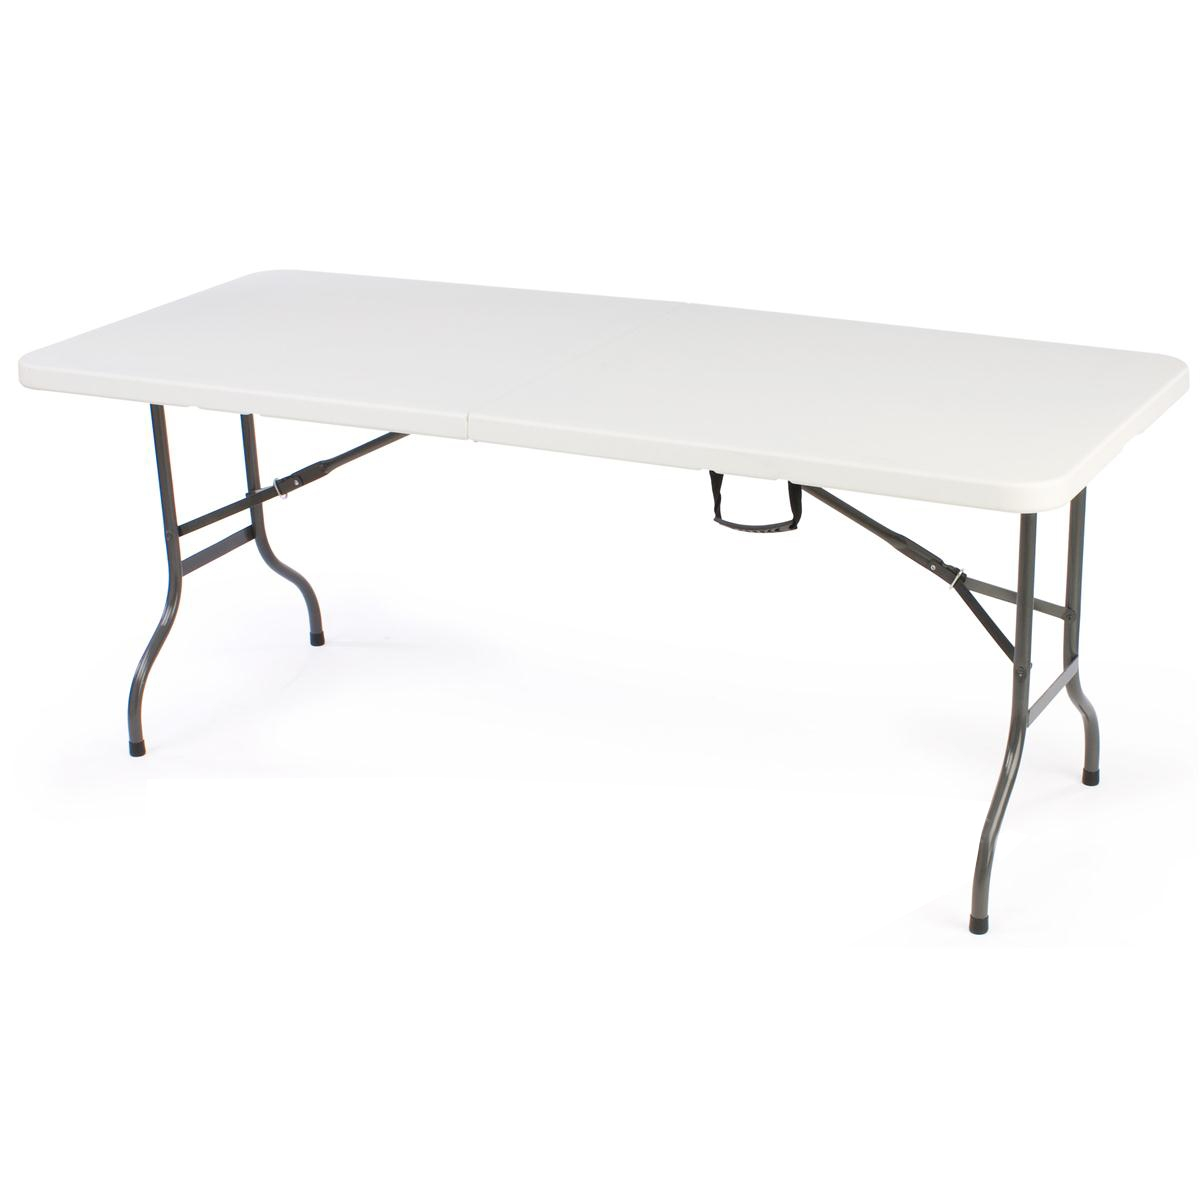 catalog workstations folding banquet detail office table product example round foldable